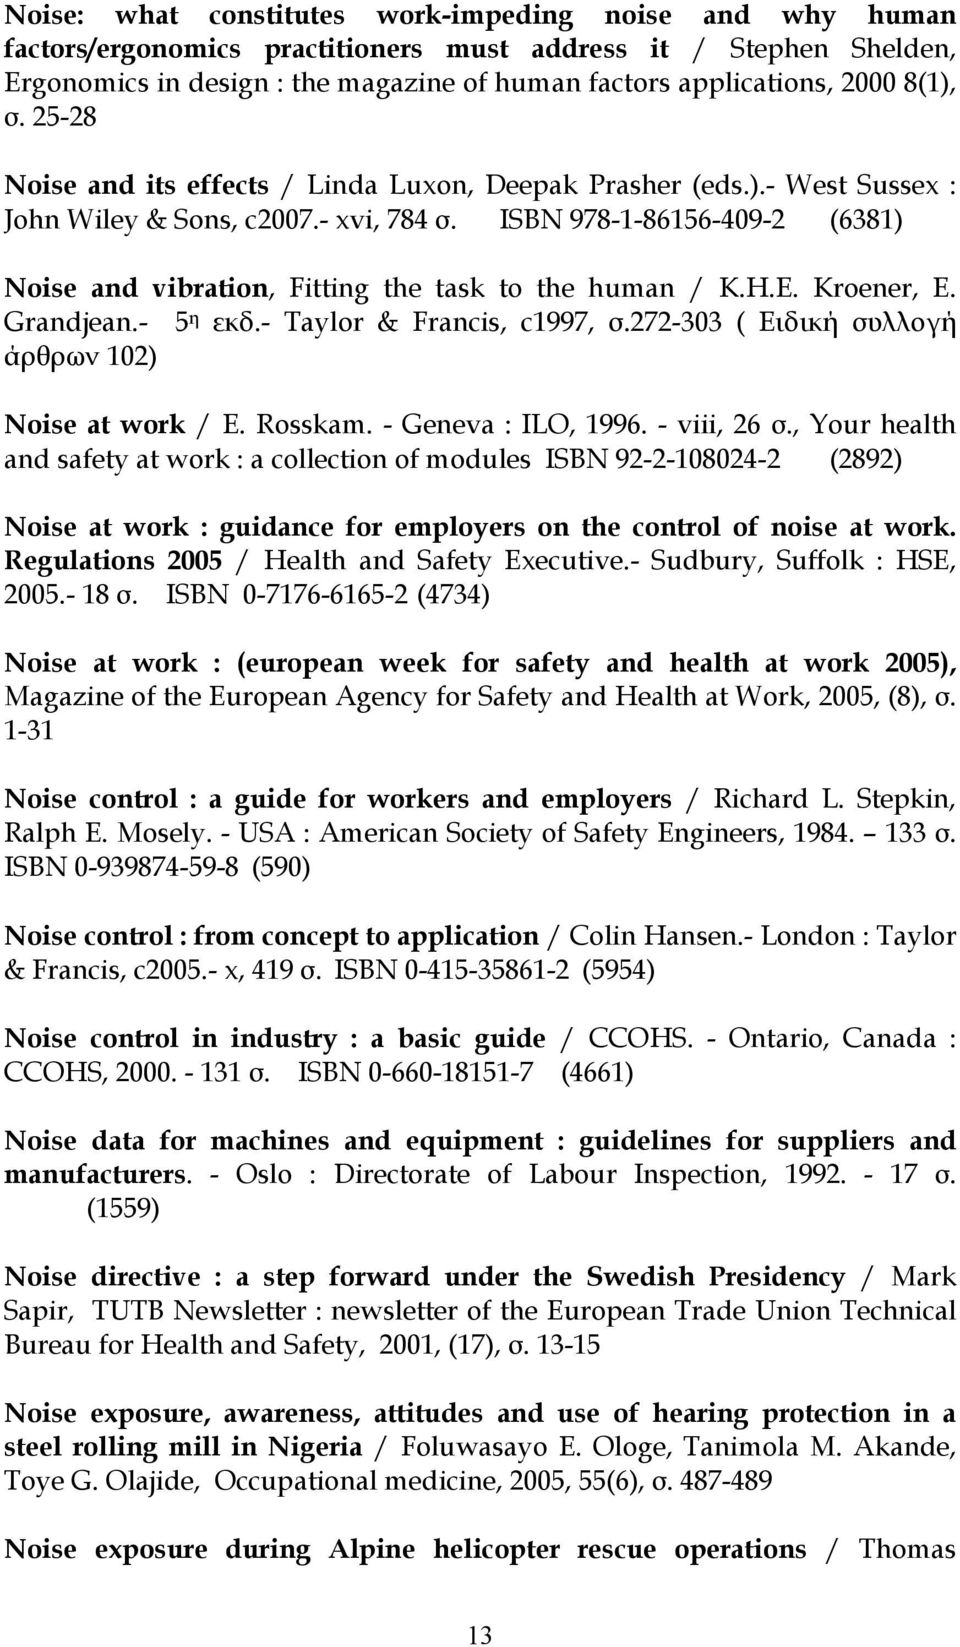 ISBN 978-1-86156-409-2 (6381) Noise and vibration, Fitting the task to the human / K.H.E. Kroener, E. Grandjean.- 5 η εκδ.- Taylor & Francis, c1997, σ.